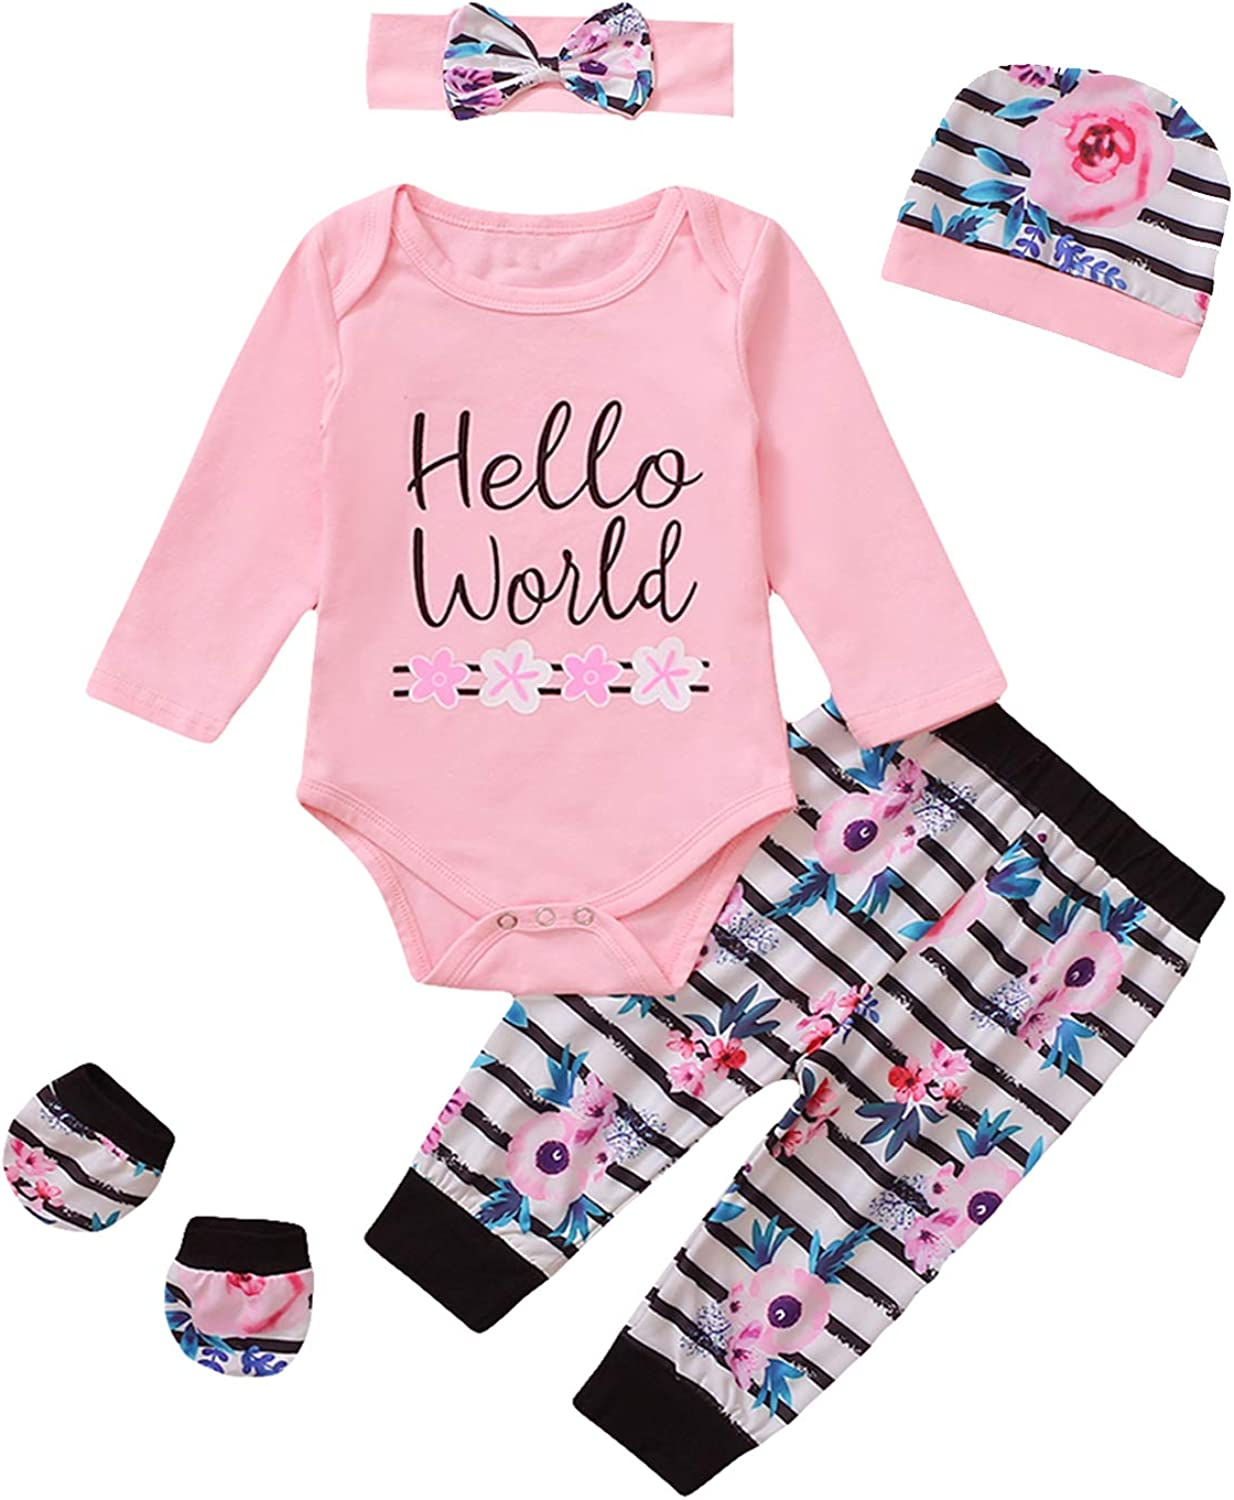 Shalofer Newborn Hello World Outfits Floral Baby Coming Home Bodysuit